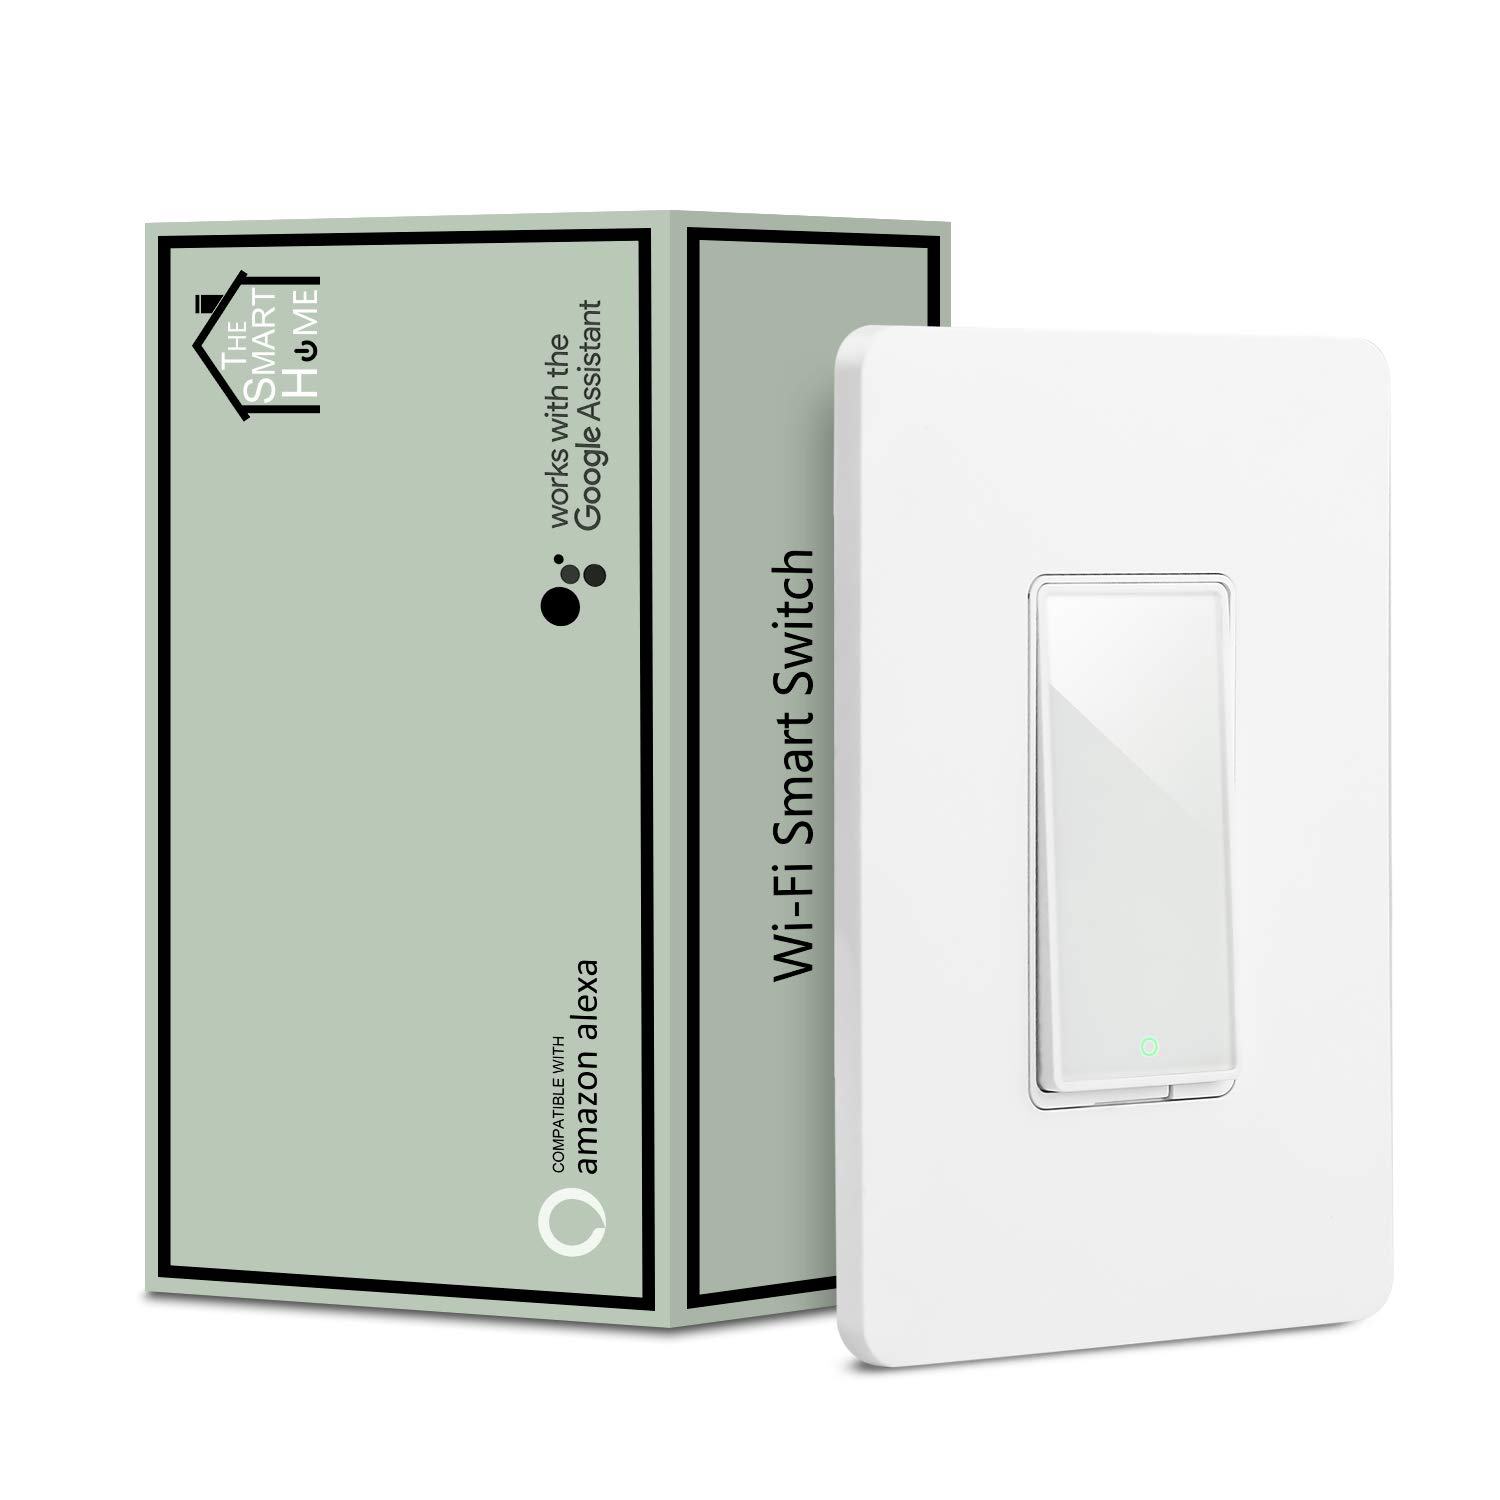 Smart Switch by Martin Jerry | Compatible with Alexa, Smart Home Devices Works with Google Home, 2.4G Wifi, No Hub is required, Easy installation, App and Voice control (1 Pack)